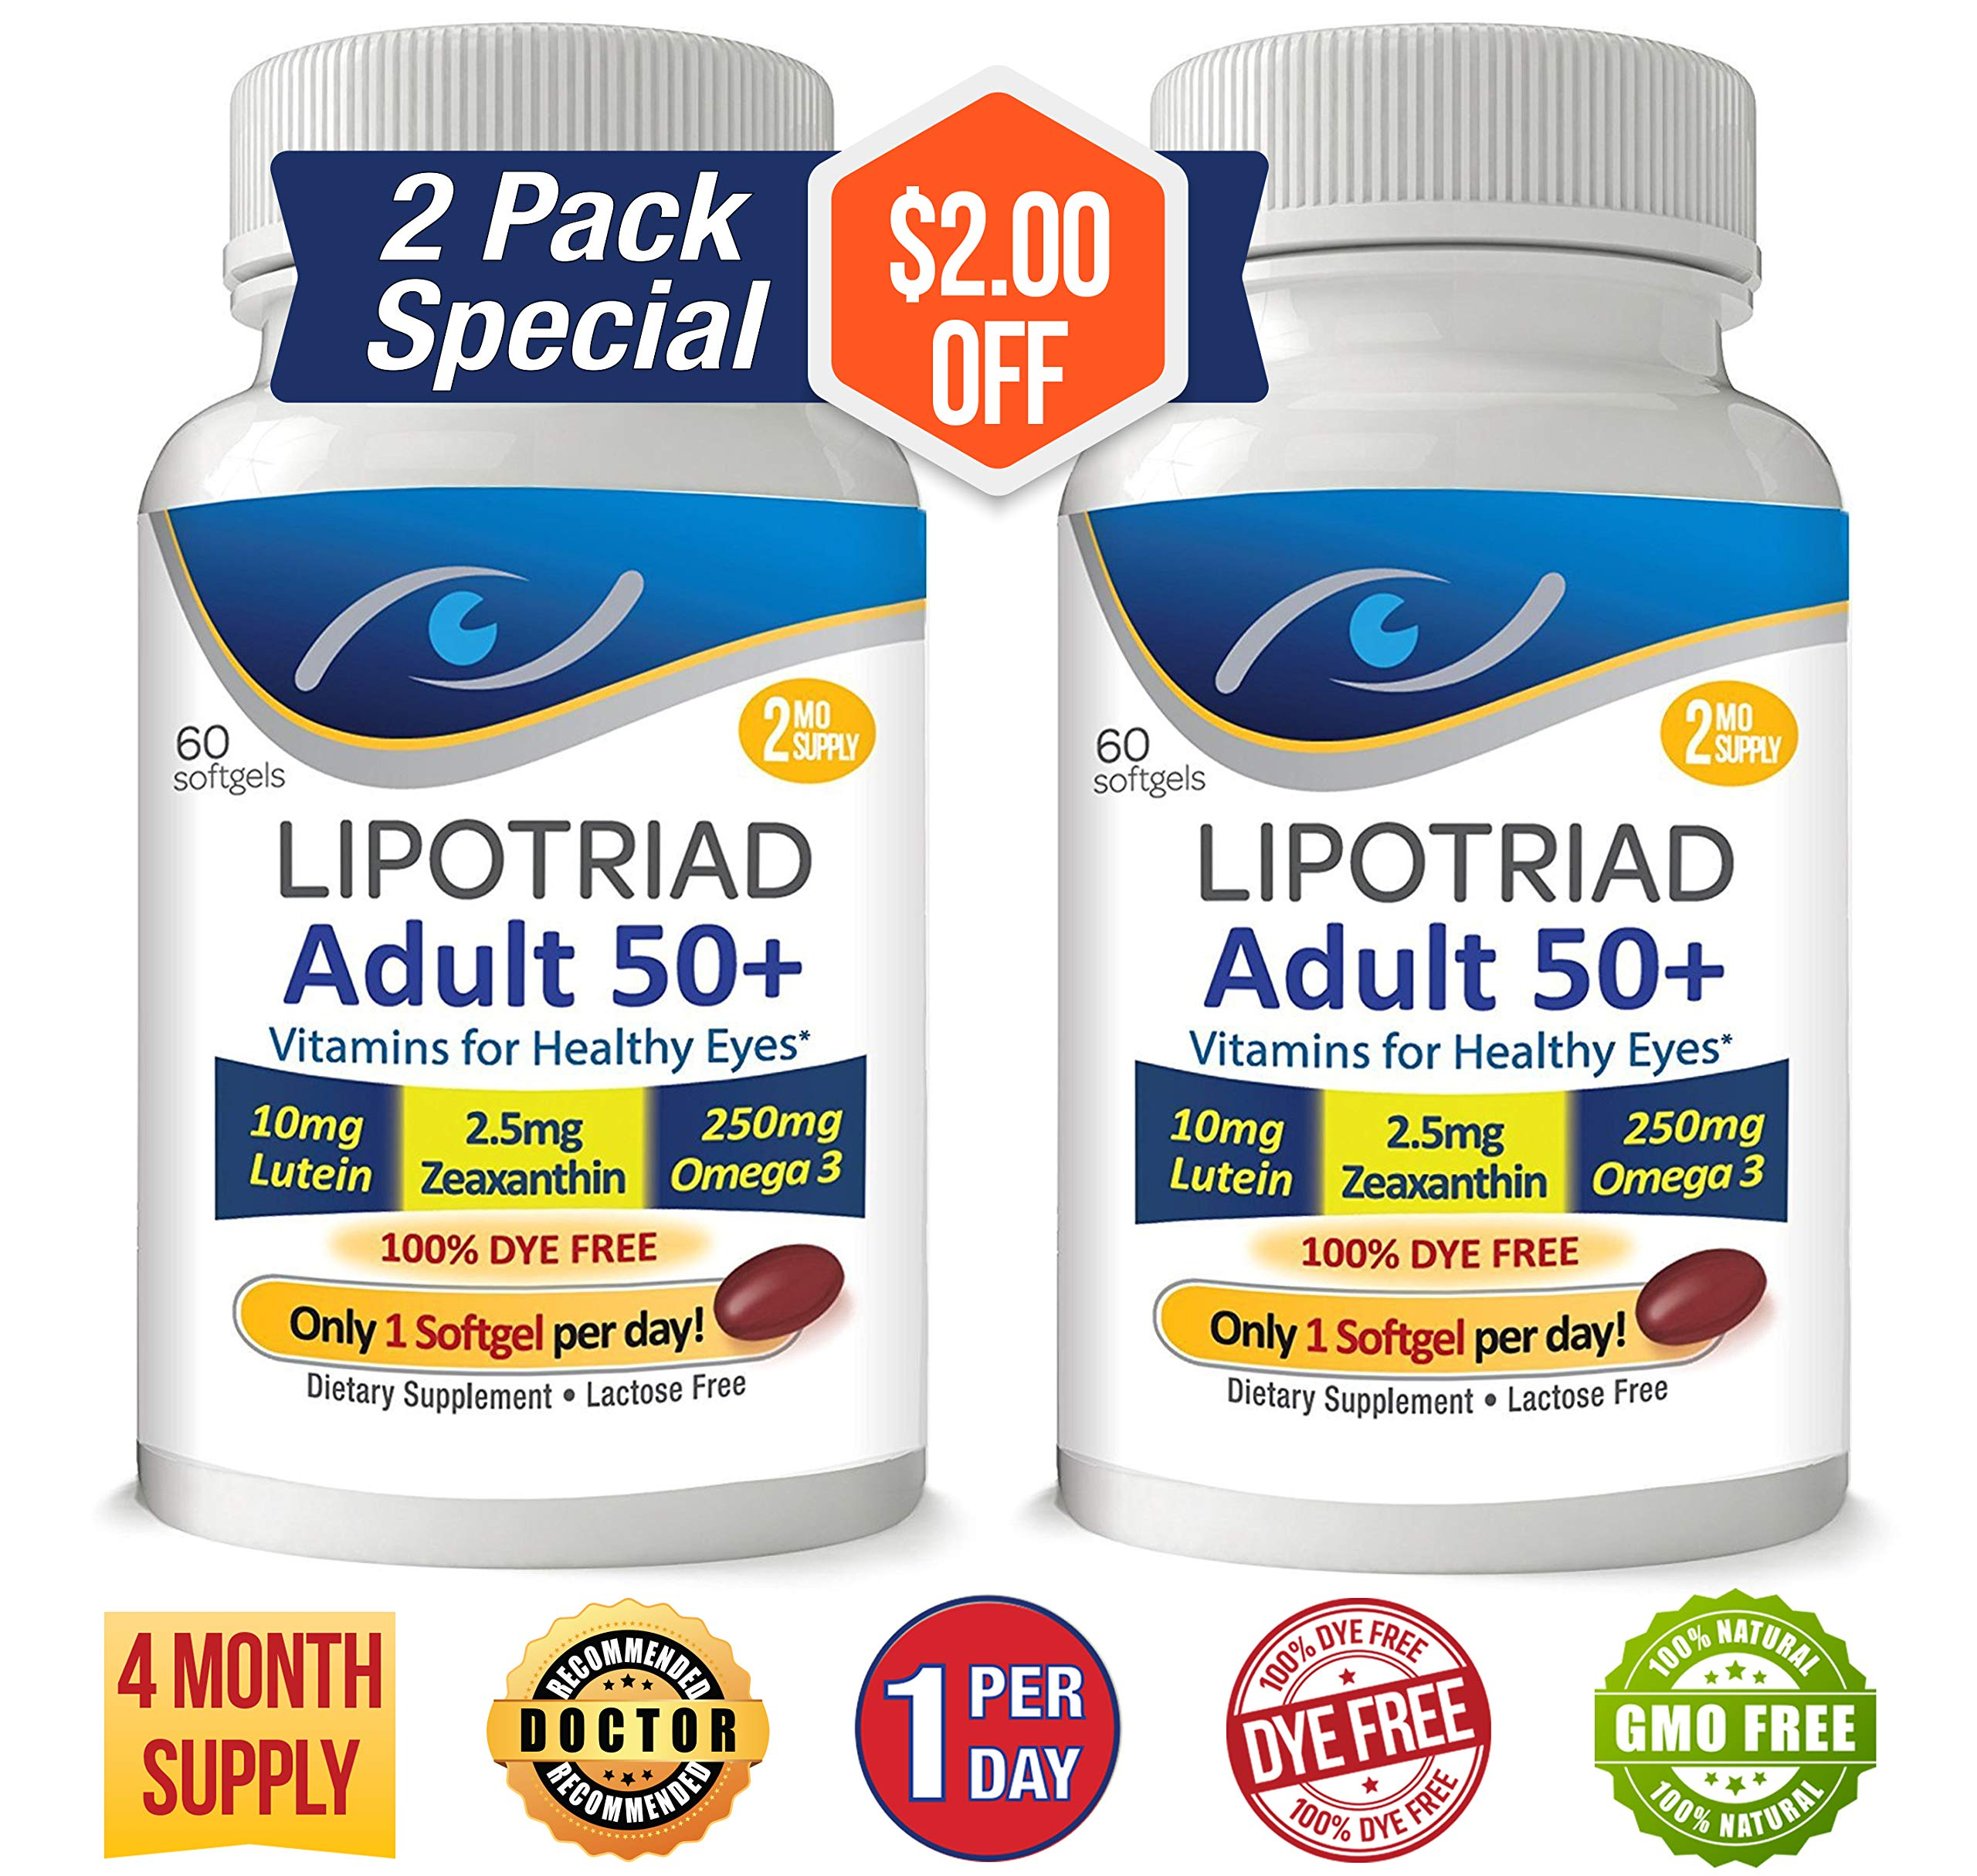 Lipotriad Adult 50+ Eye Vitamin and Mineral Supplement w/10mg Lutein, Zeaxanthin, Omega 3, Vitamin C, E, Zinc Copper, 1 Per Day, 60 Softgels - 4mo Supply - 2pck by Lipotriad